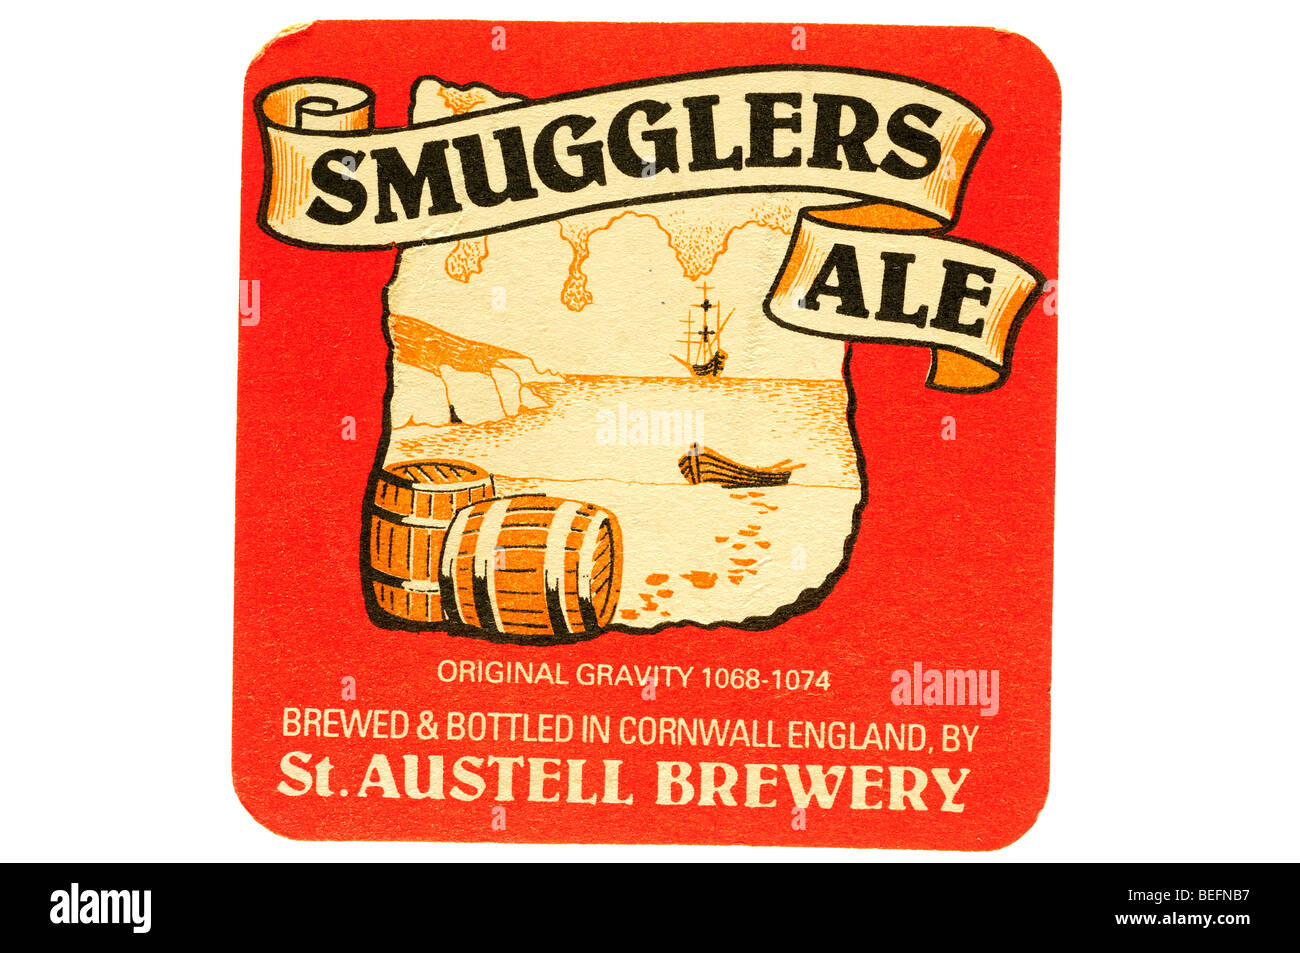 smugglers ale original gravity 1068 1074 brewed & bottled in cornwall england by st austell brewery - Stock Image